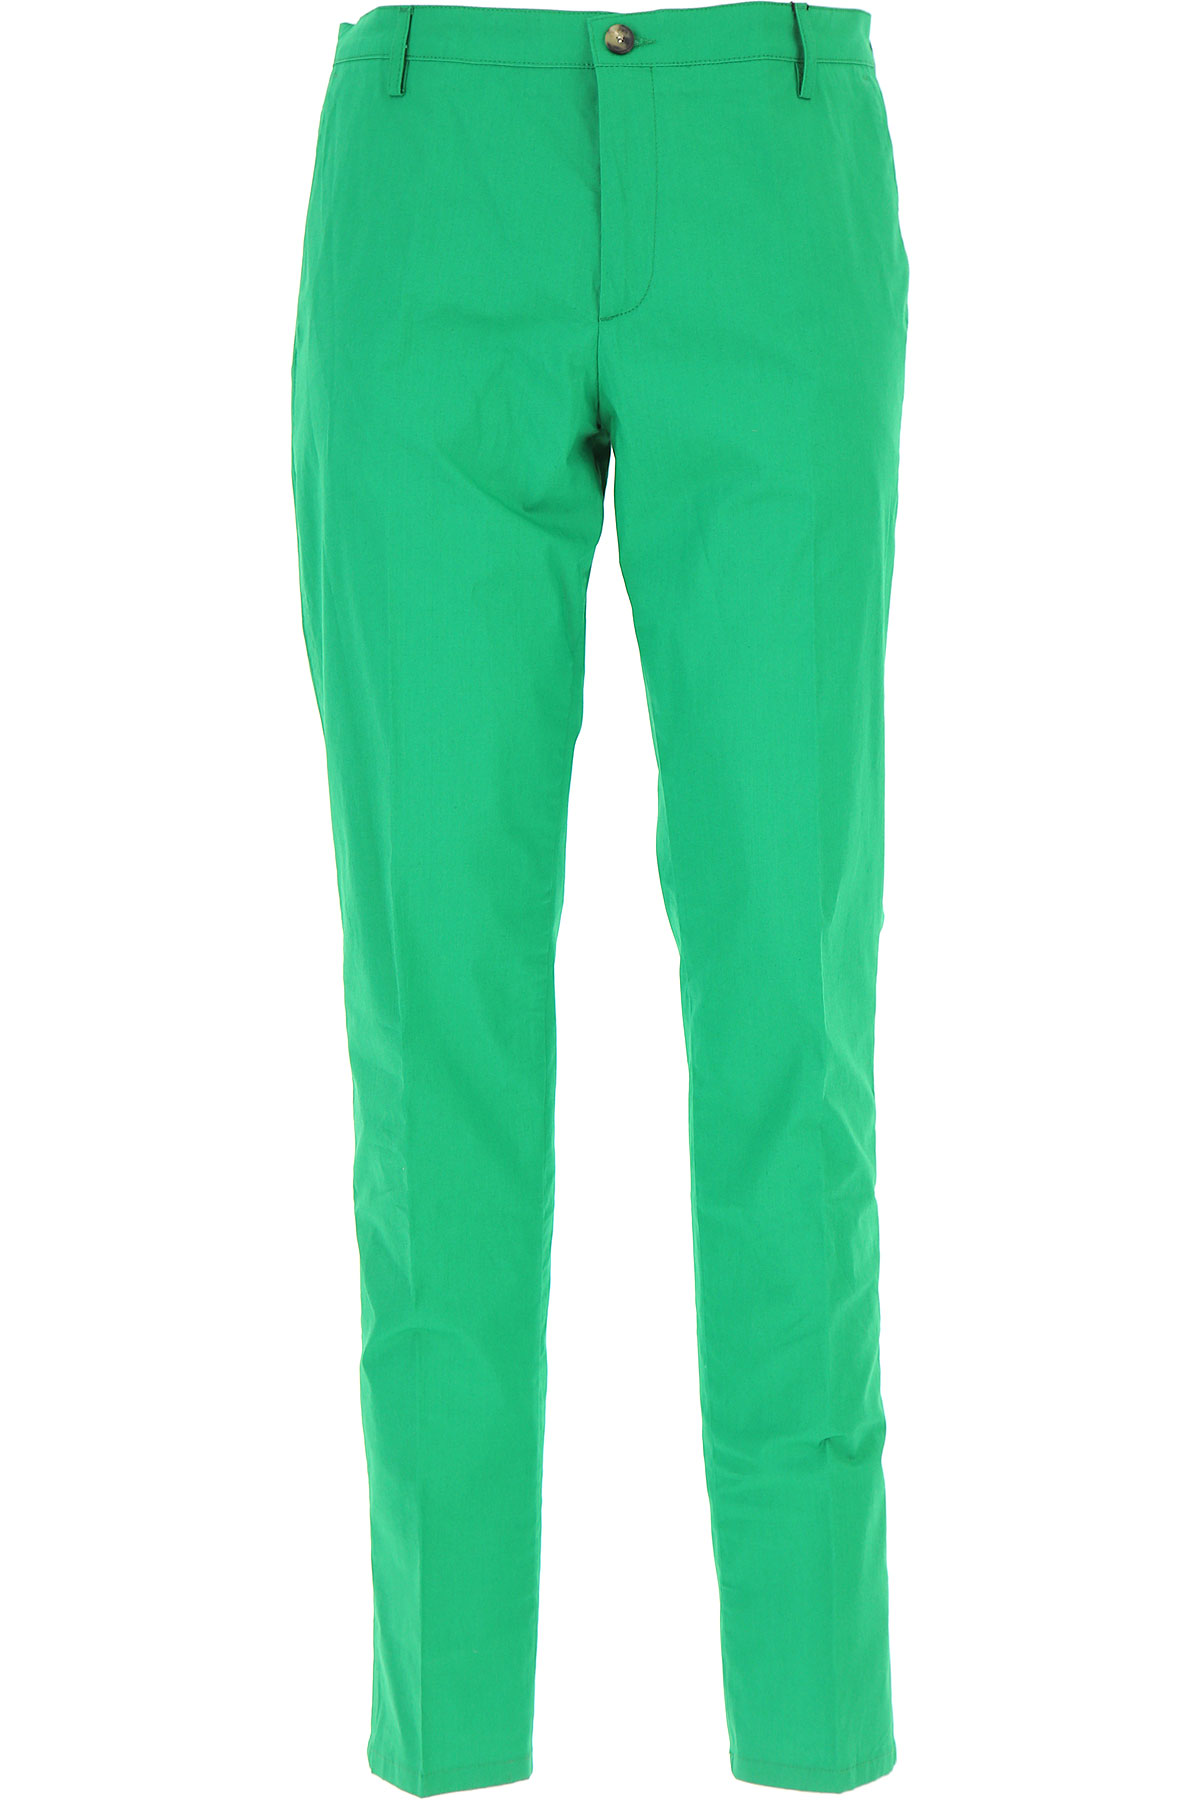 Kenzo Pants for Men On Sale, Green, Cotton, 2017, 30 34 36